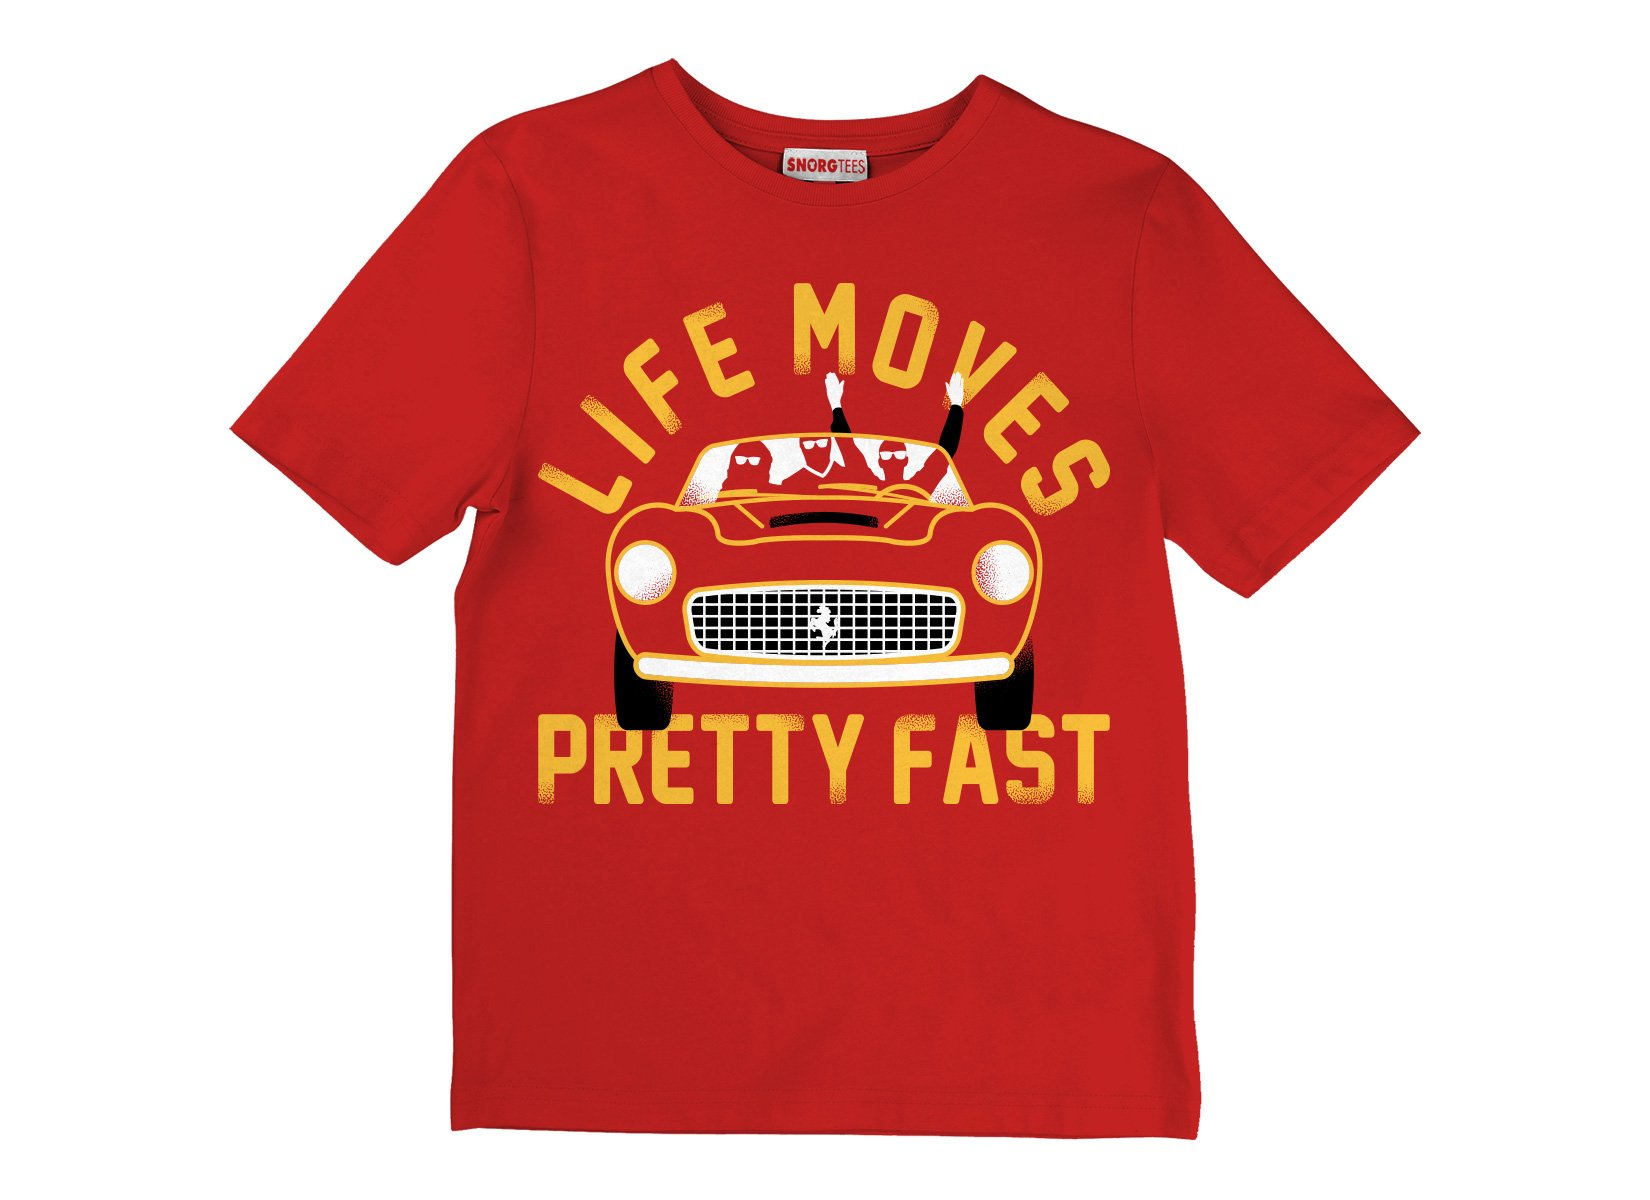 Life Moves Pretty Fast on Kids T-Shirt